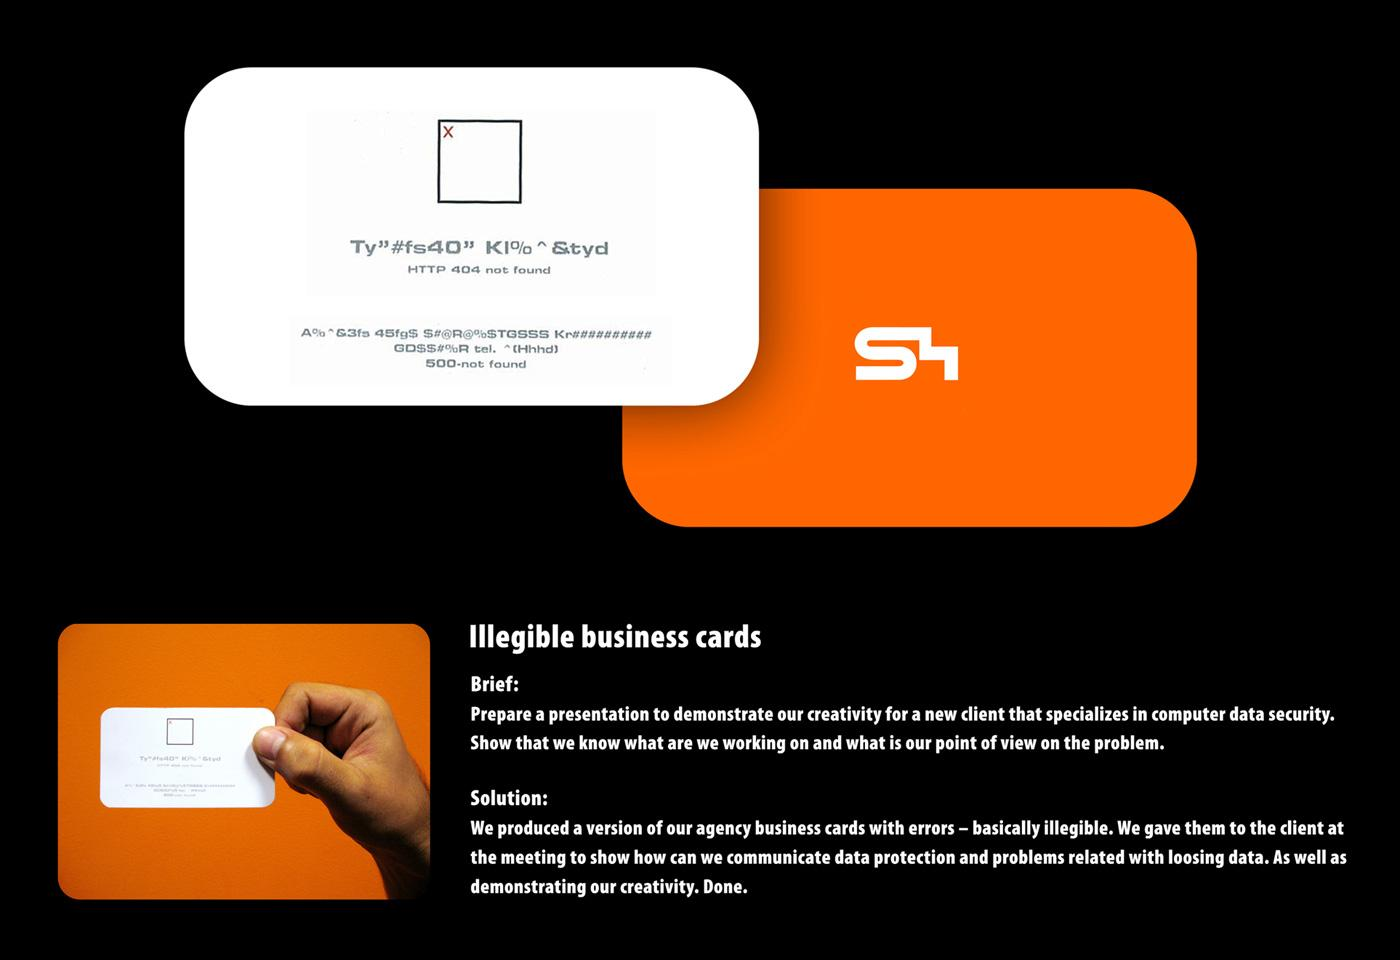 S4 Direct Ad -  Illegible business cards